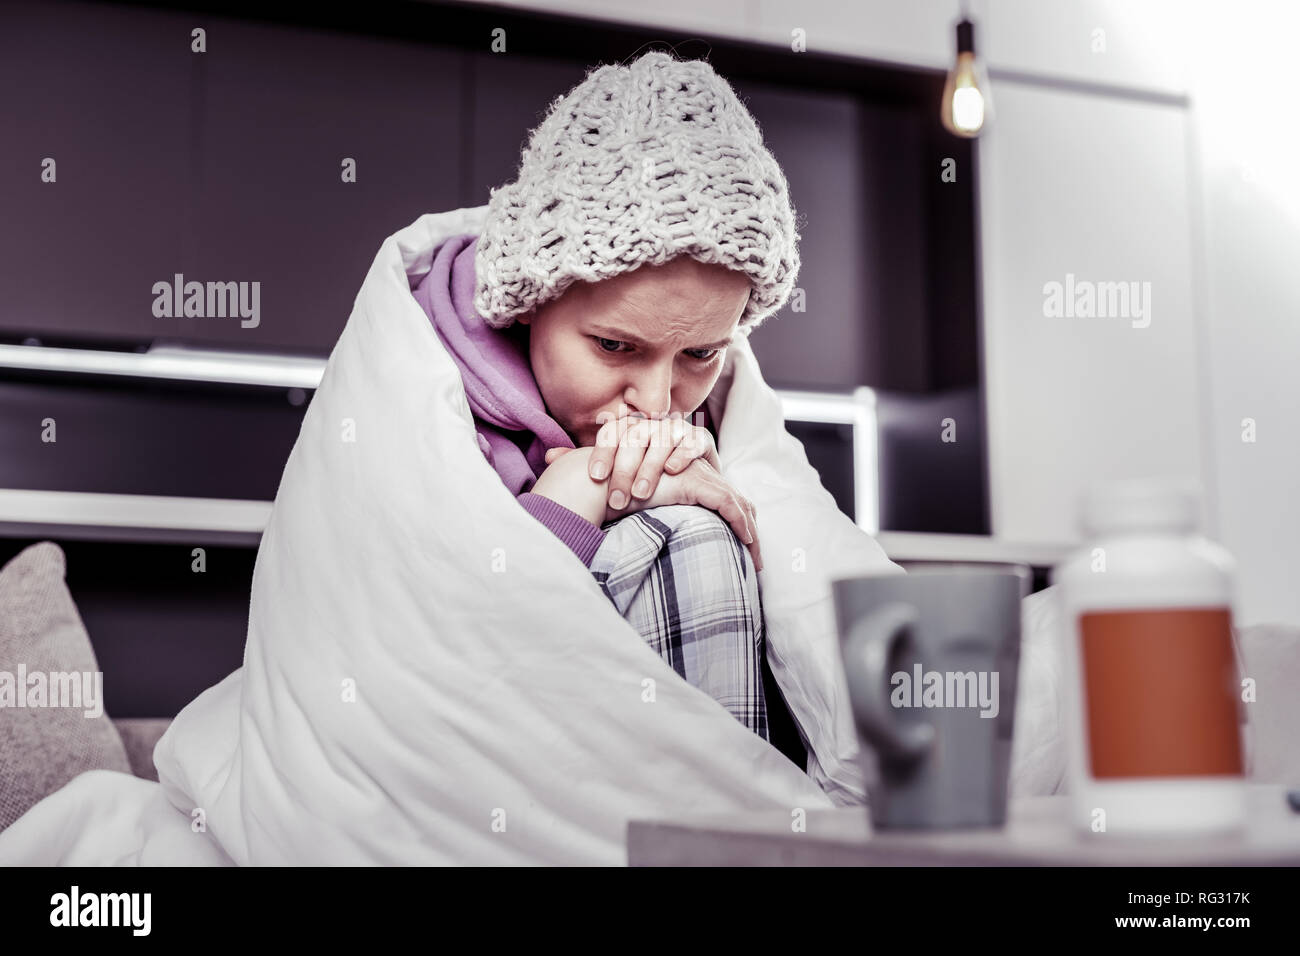 Depressed female person being deep in her thoughts - Stock Image